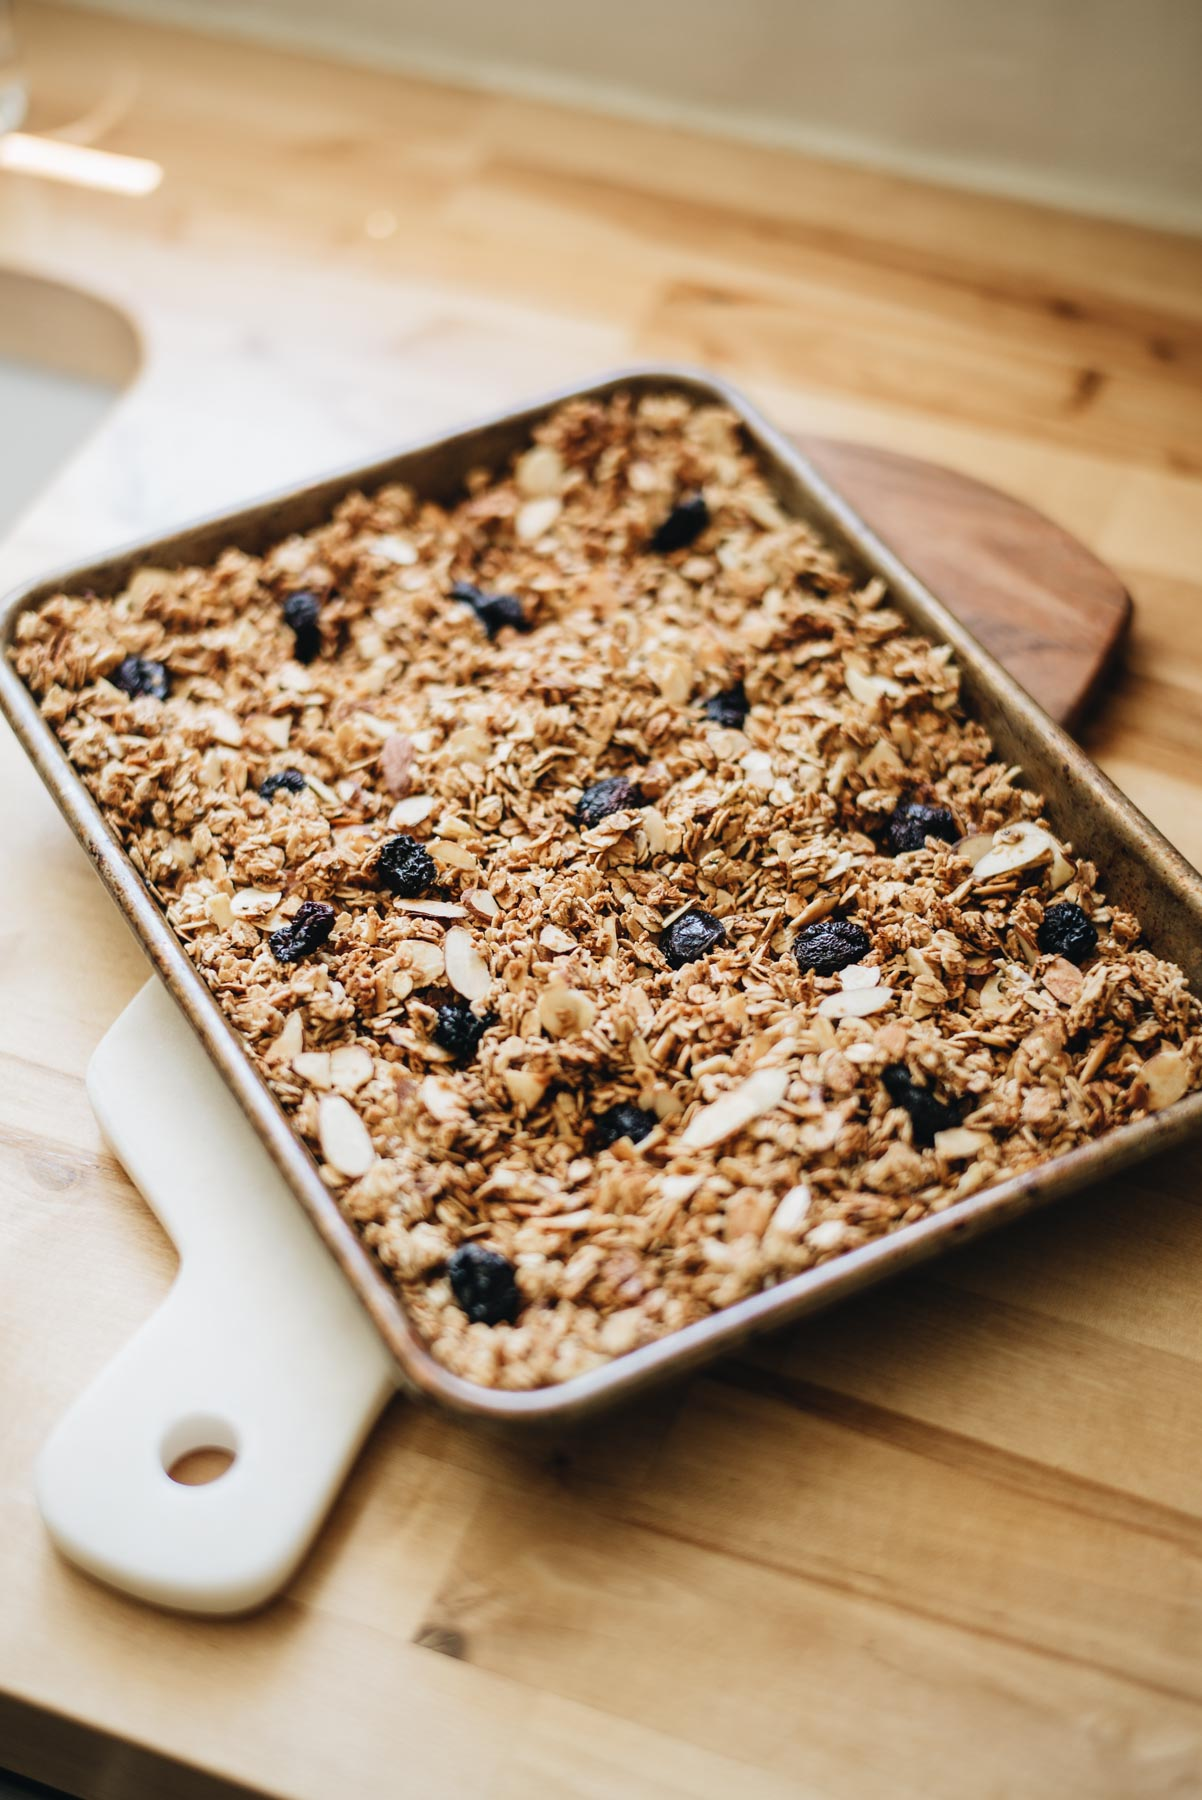 Jess Ann Kirby bakes homemade granola for a healthier alternative to store bought